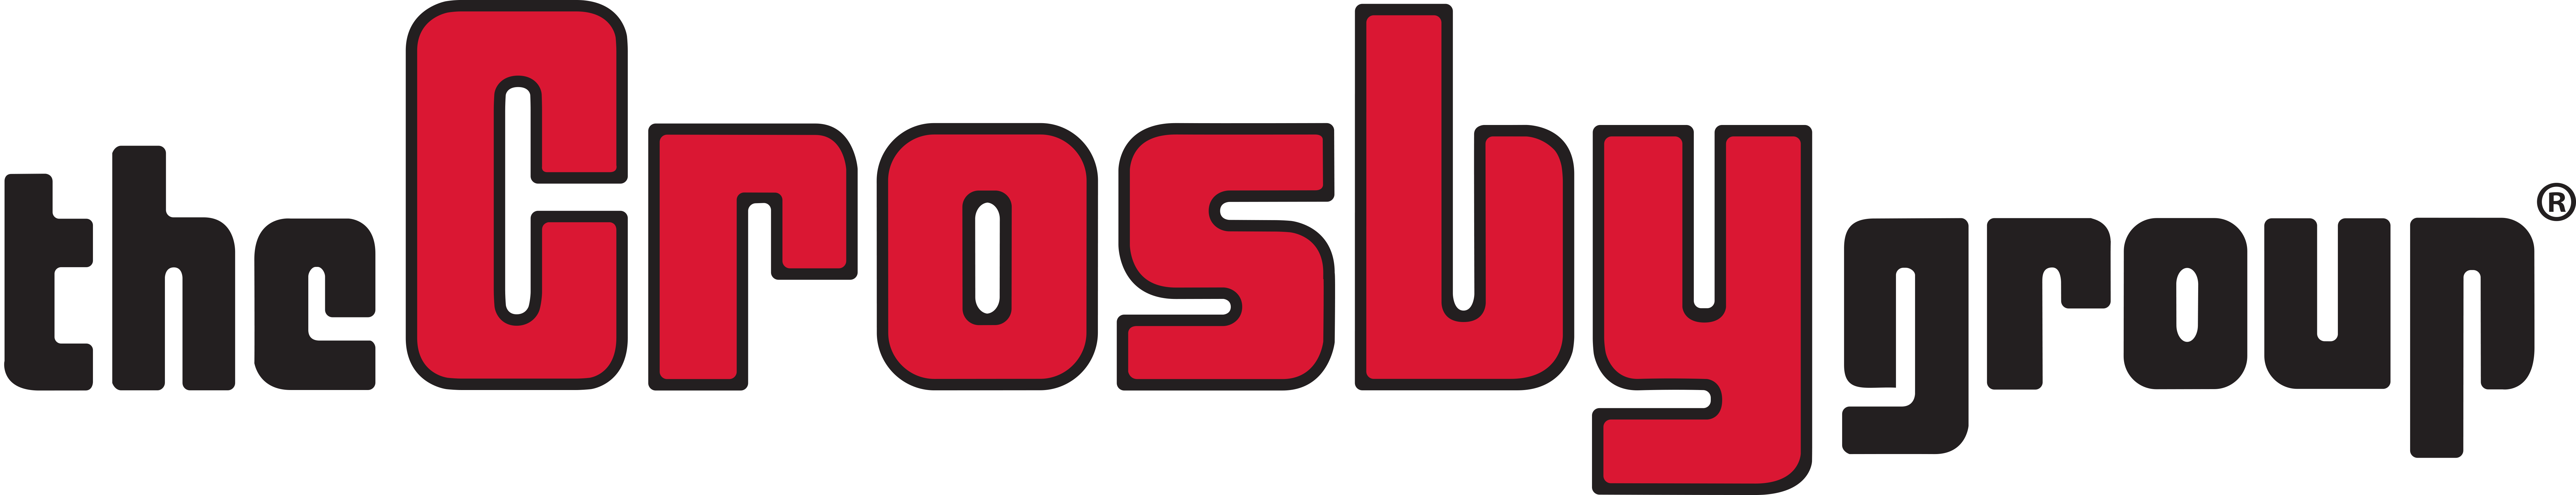 The Crosby Group is a manufacturer of rigging hardware, lifting equipment and a provider of lifting solutions